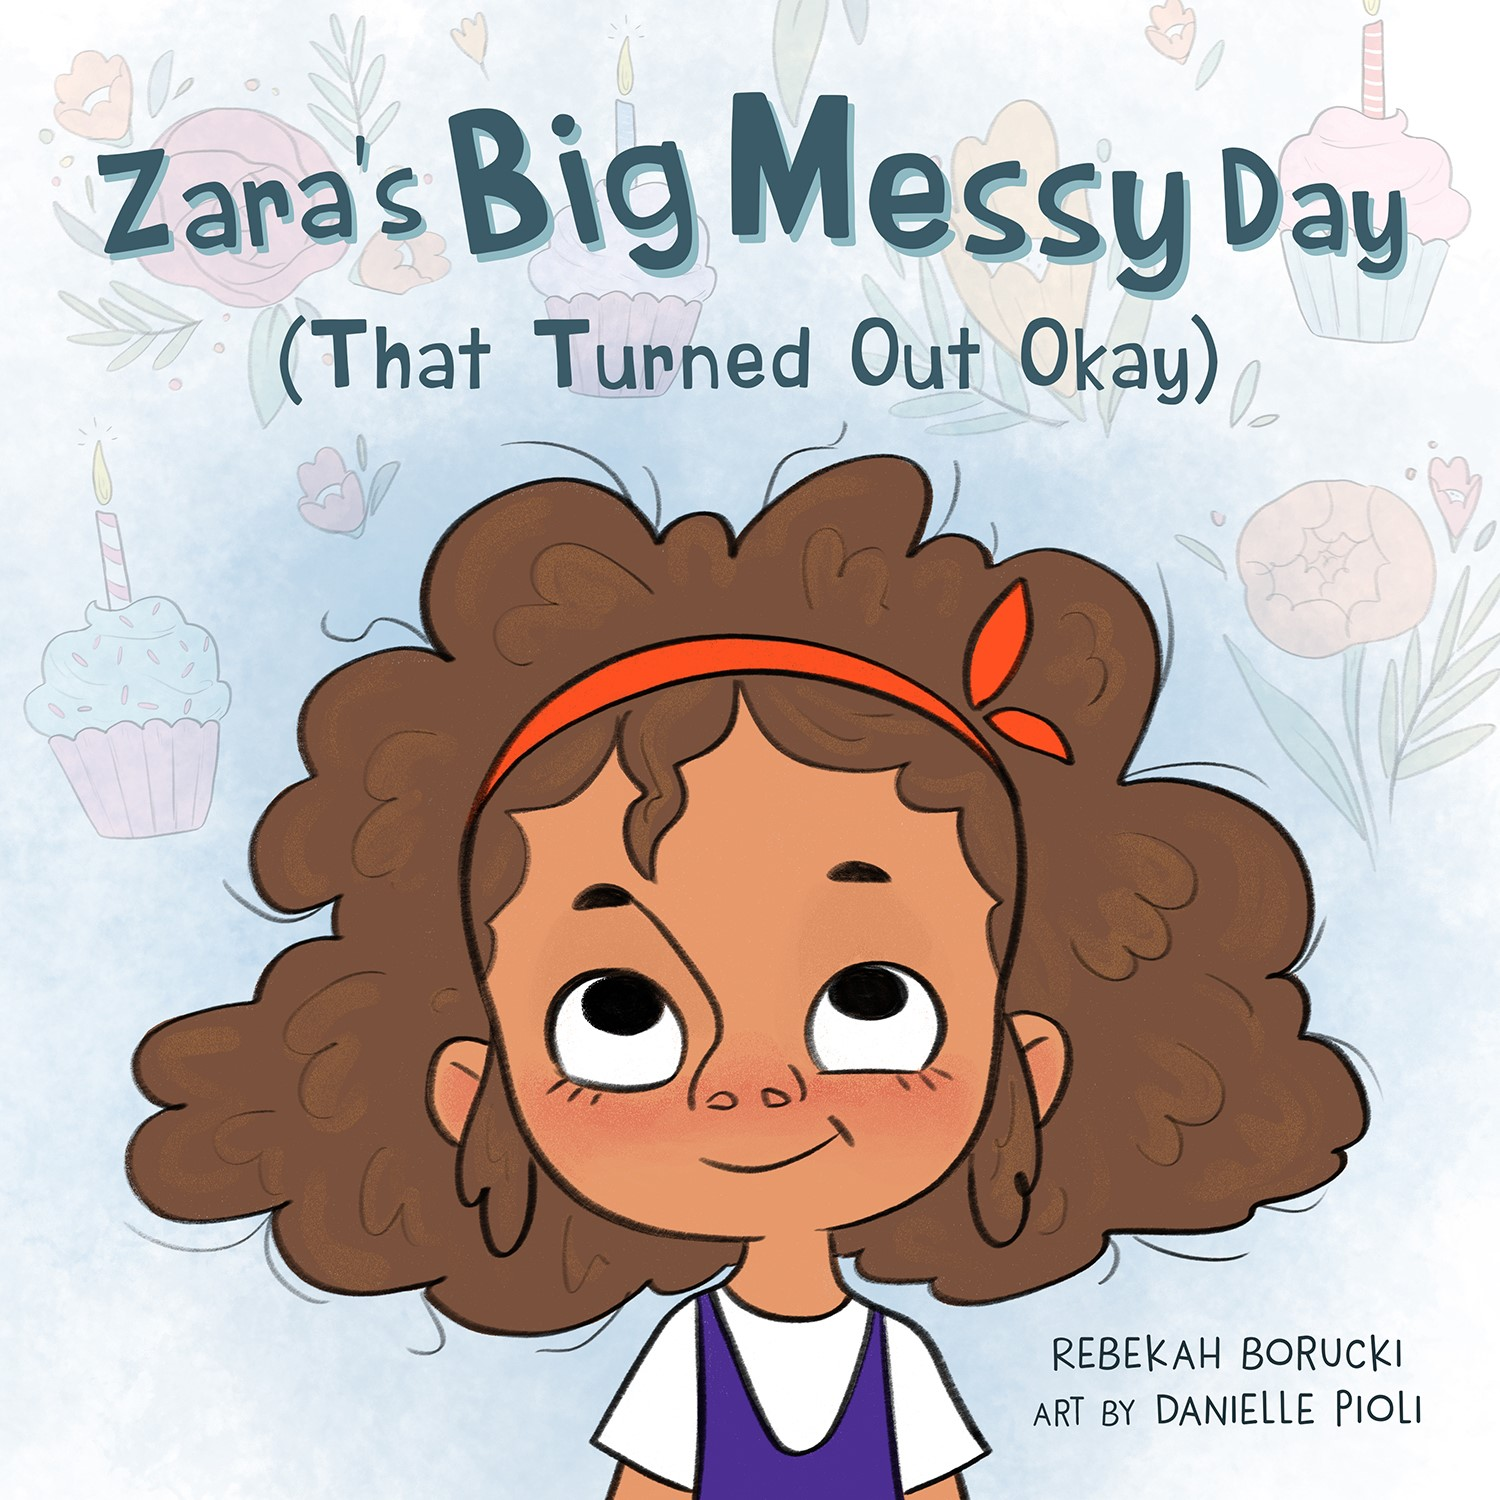 Zara's Big Messy Day (that Turned Out Okay)